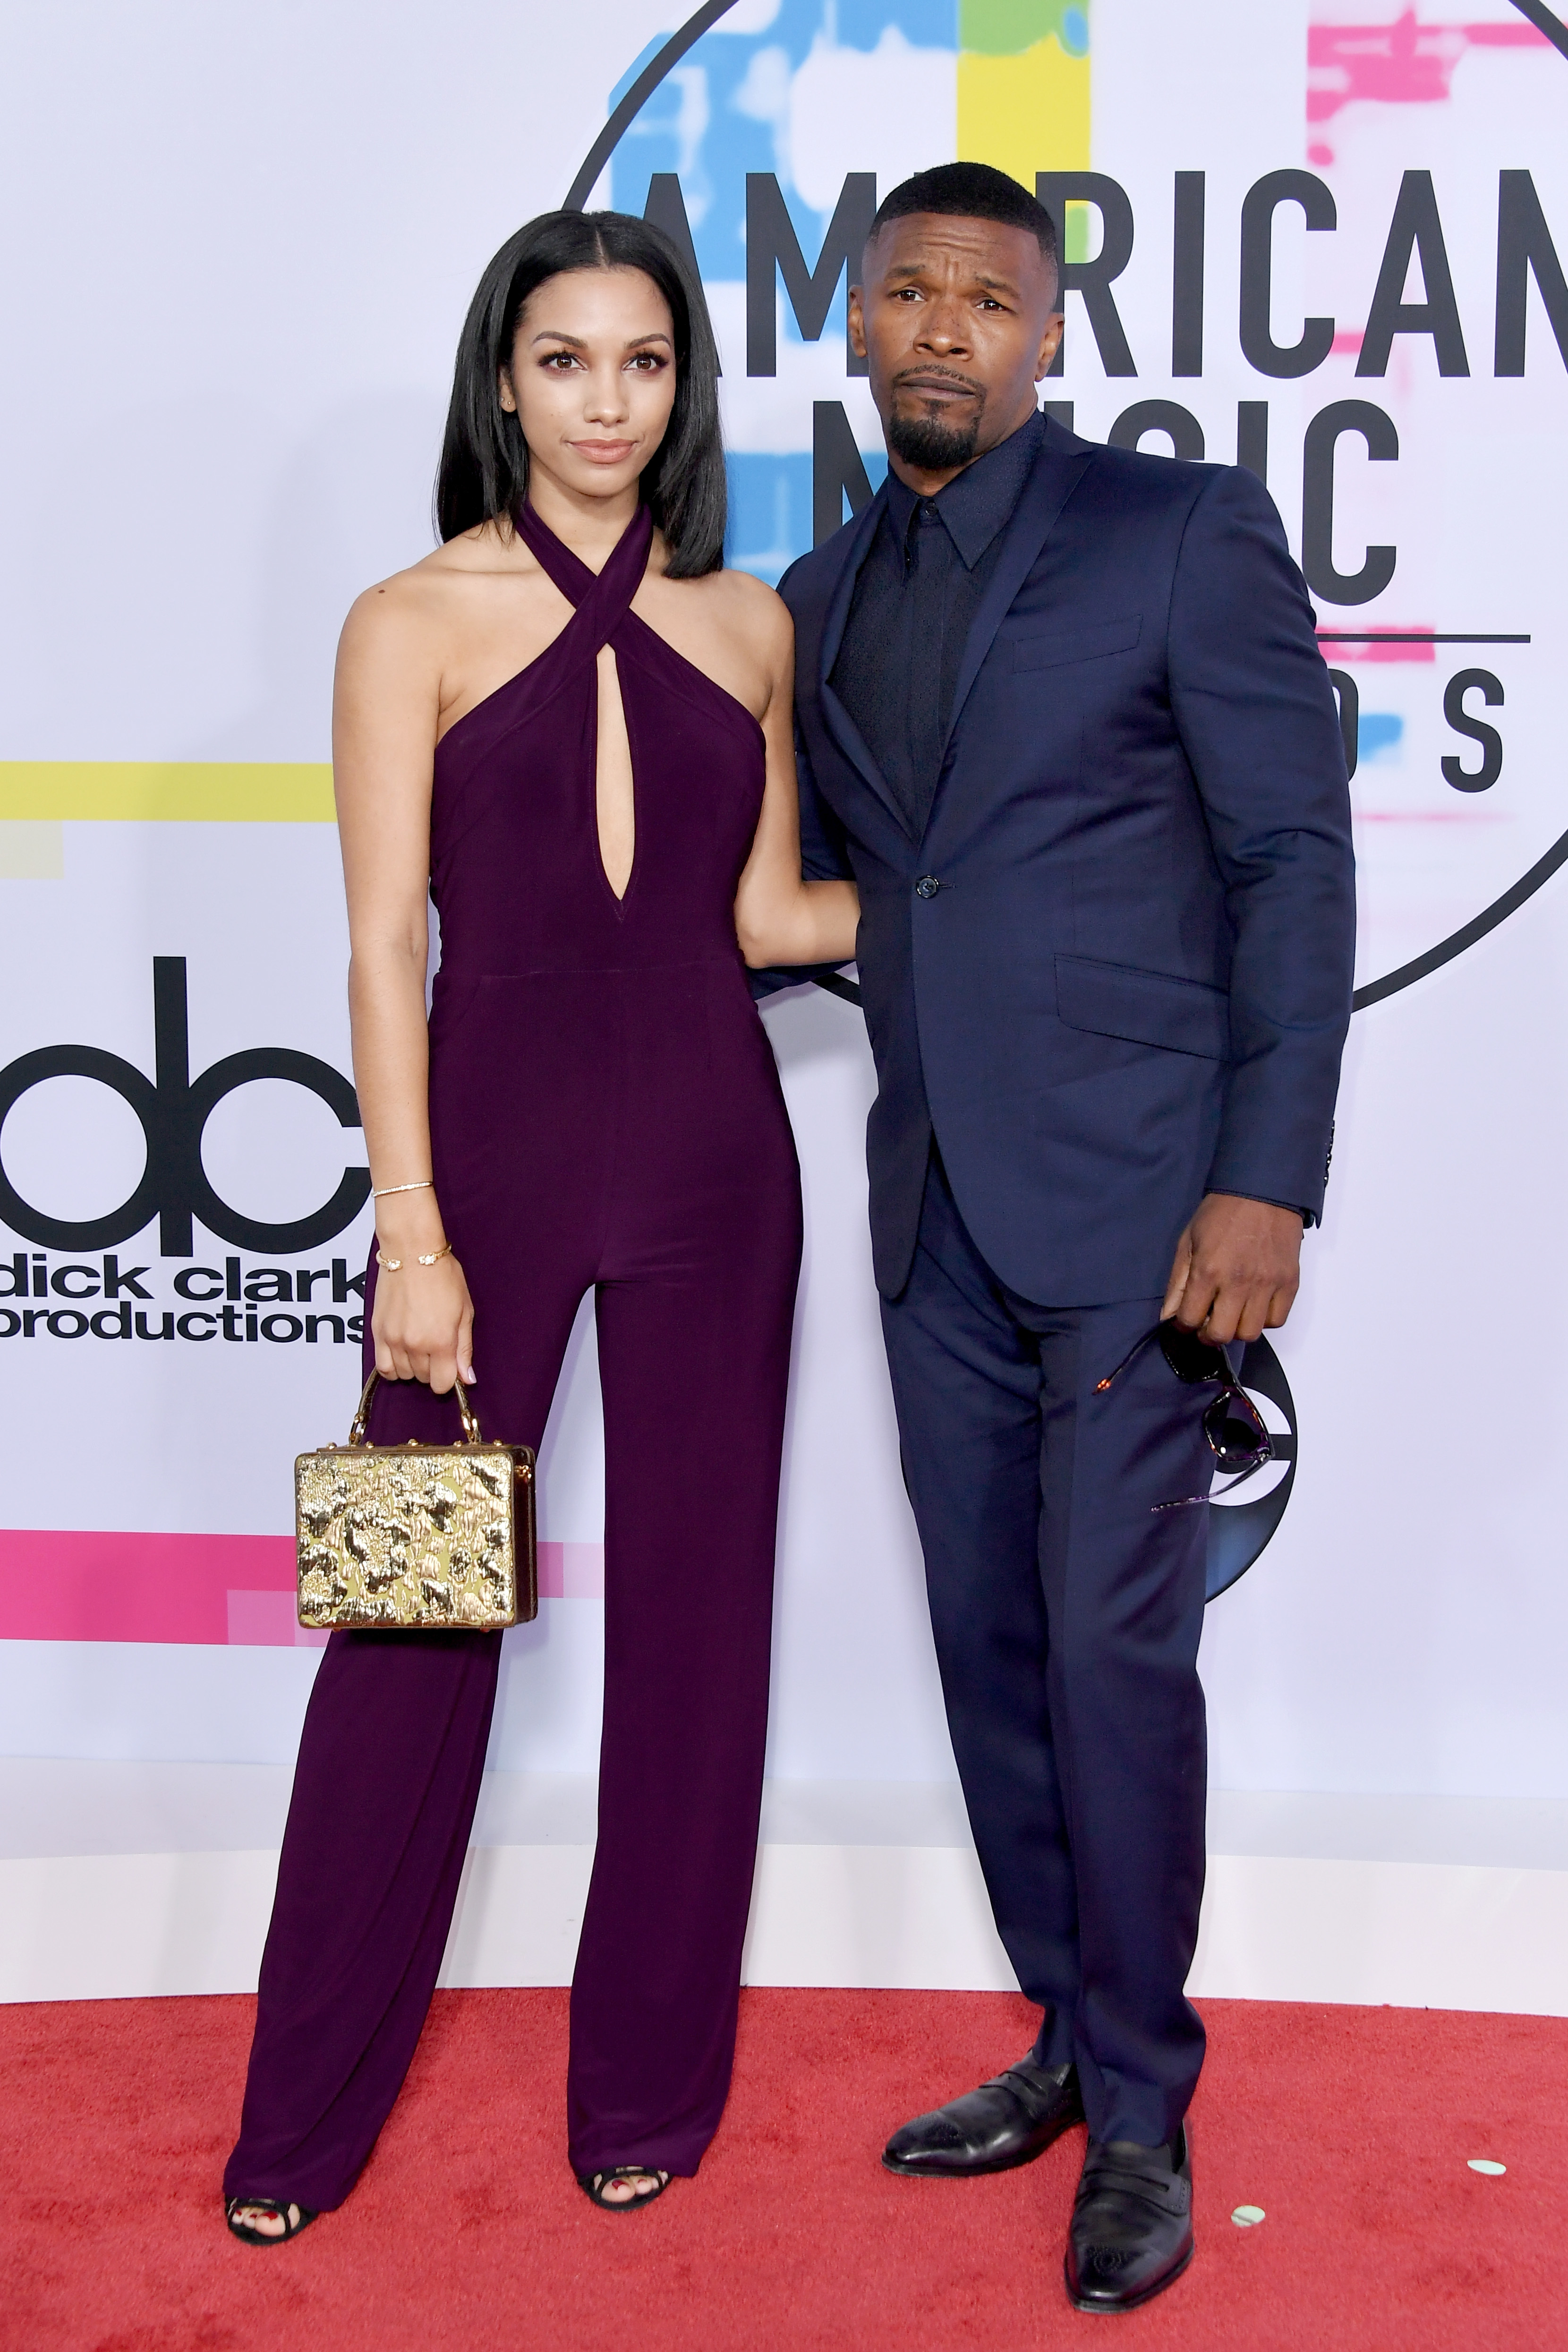 Corinne Foxx and Jamie Foxx attend the 2017 American Music Awards at Microsoft Theater in Los Angeles on Nov. 19, 2017.